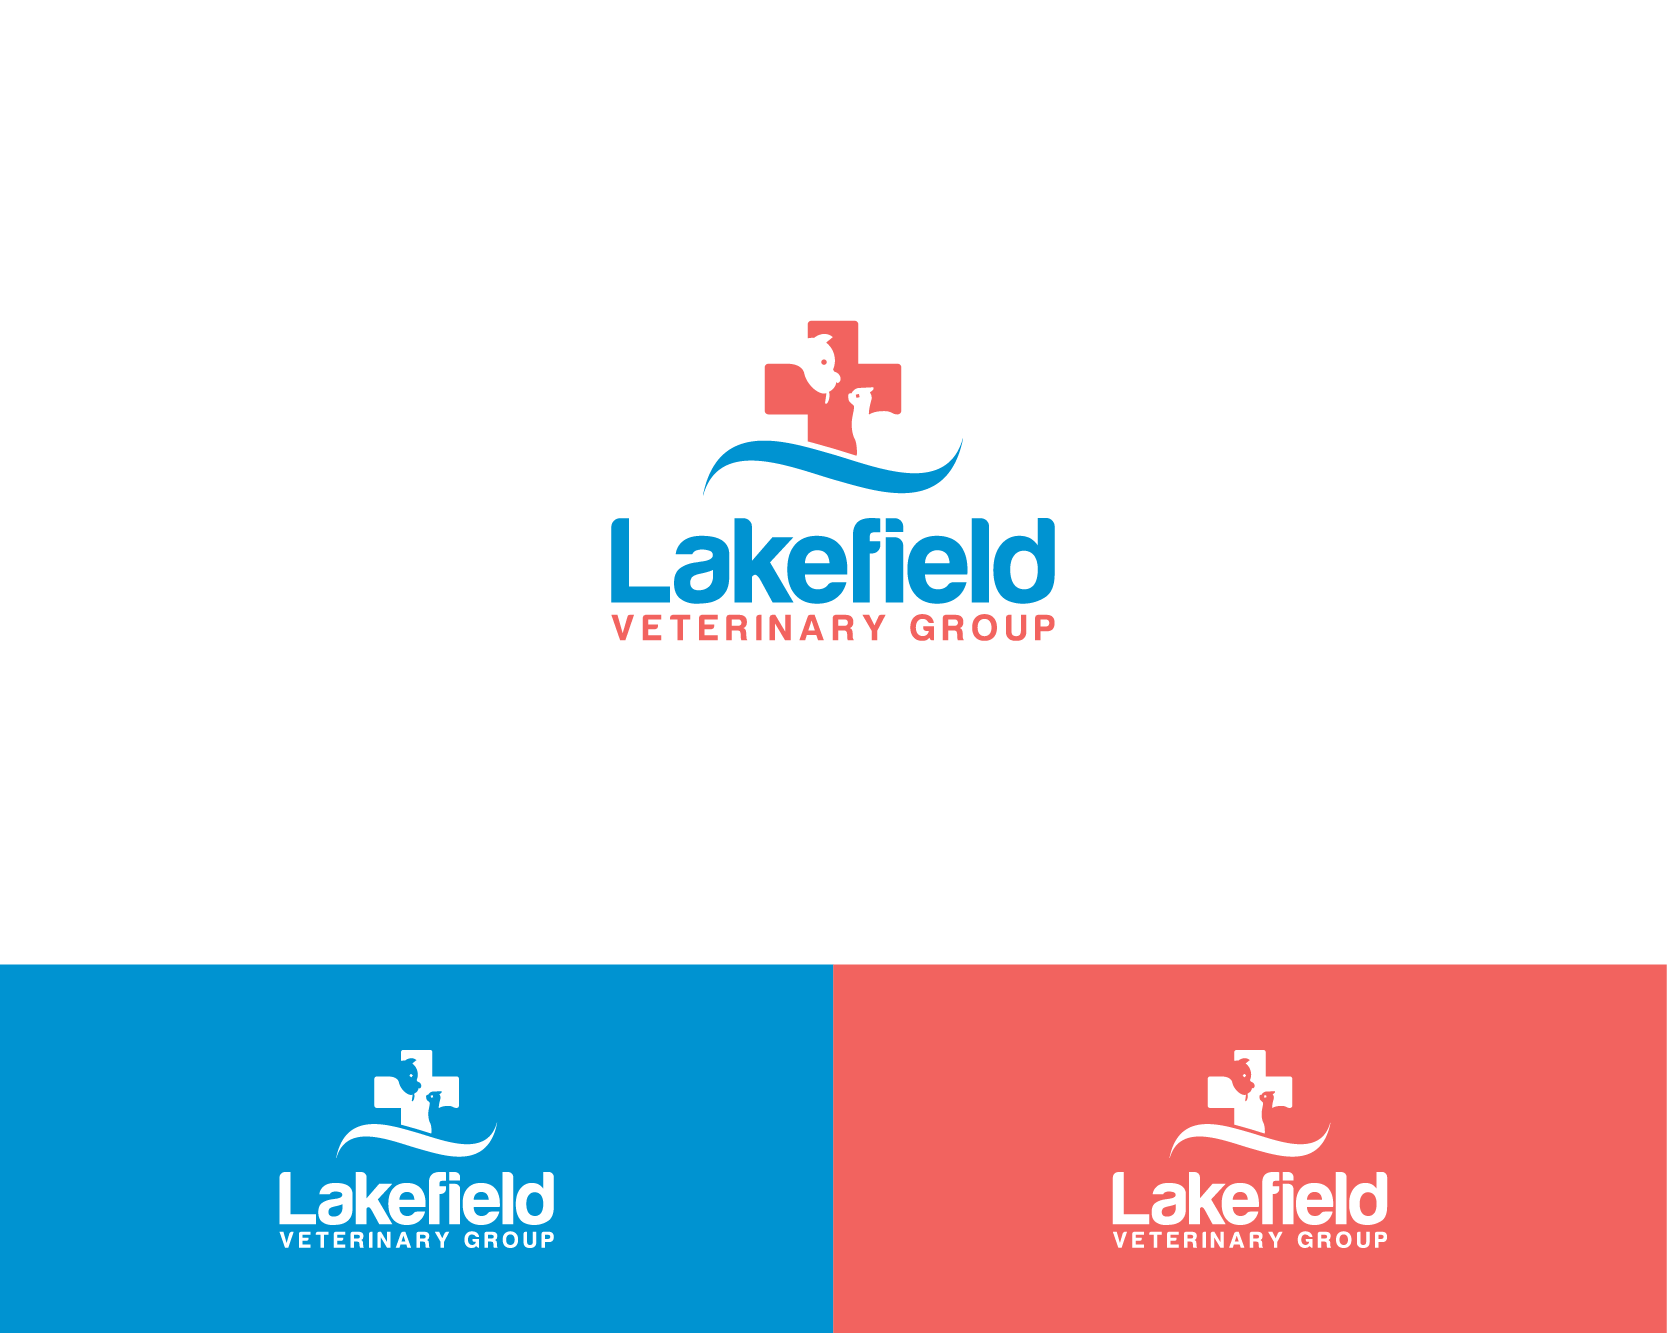 Logo Design by Shivaprasad Sangondimath - Entry No. 17 in the Logo Design Contest Inspiring Logo Design for Lakefield Veterinary Group.